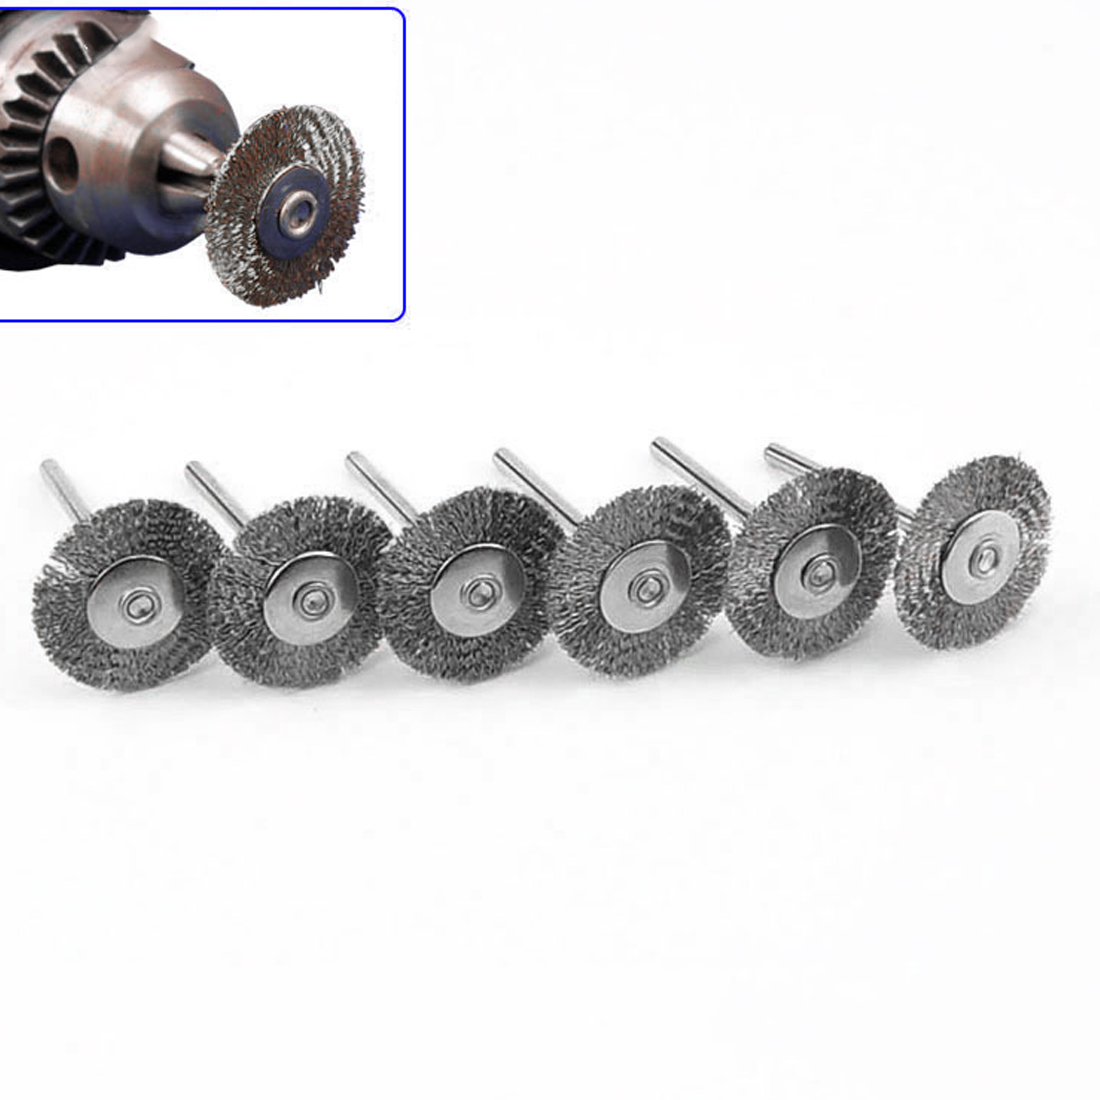 Hot 10Pcs Dremel Accessories 22mm Steel Rotary Brush Dremel Wire Wheel Brushes for Grinder Rotary Tool for Mini Drill Polishing 2016 new high quality 15 pcs brass wire brush brushes wheel dremel rotary tool accessories